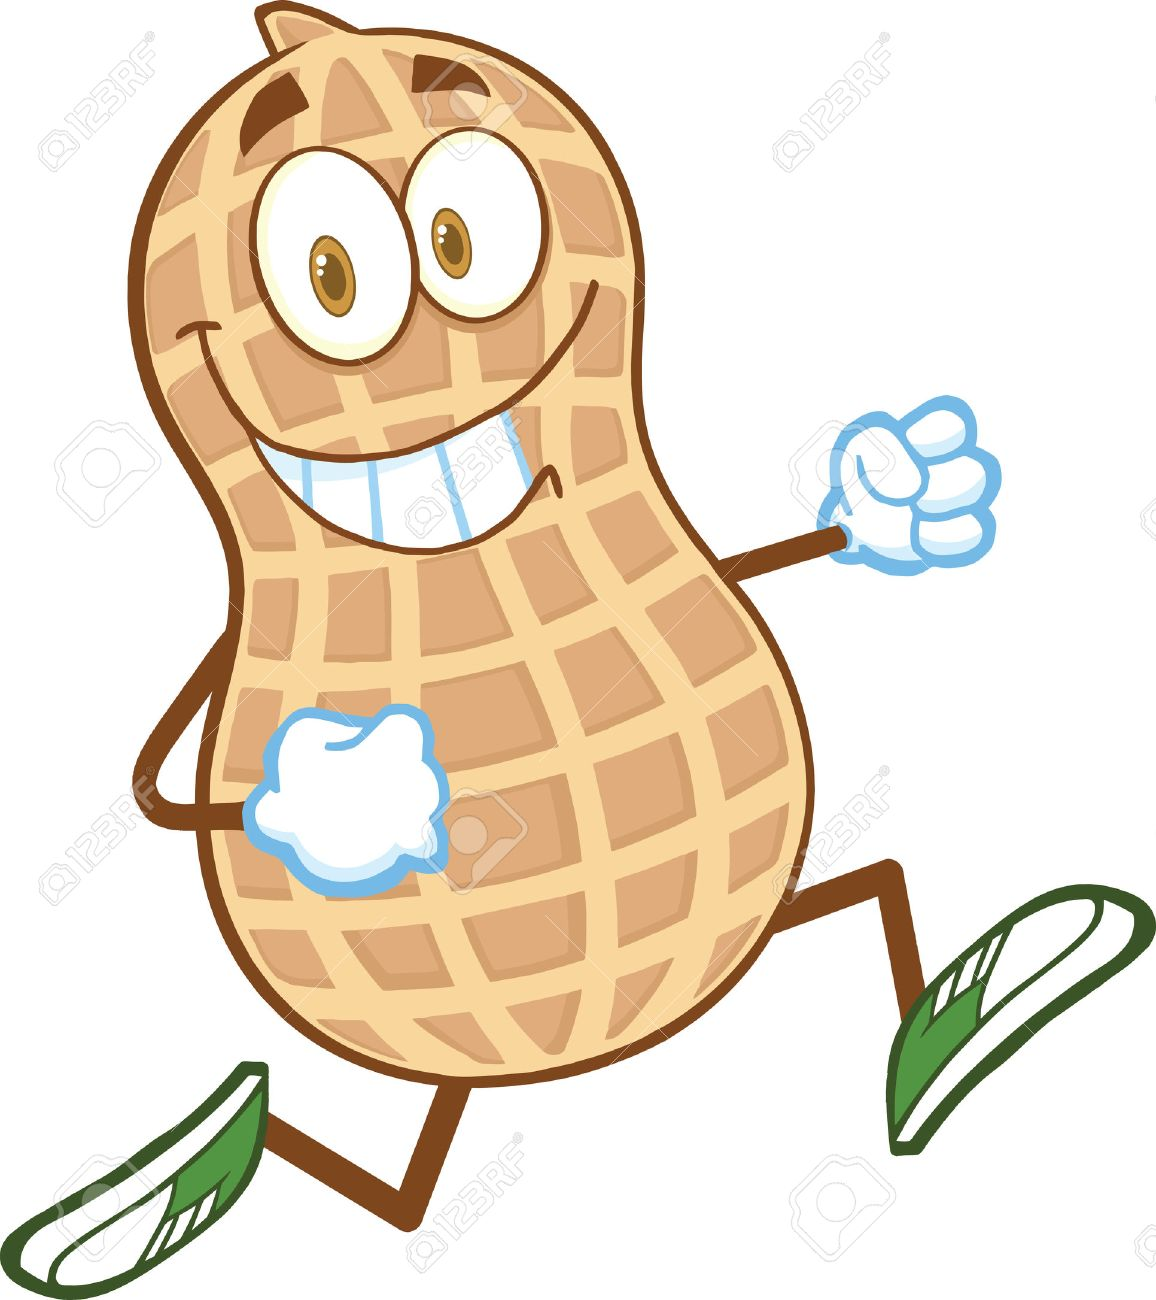 Image result for peanut cartoon